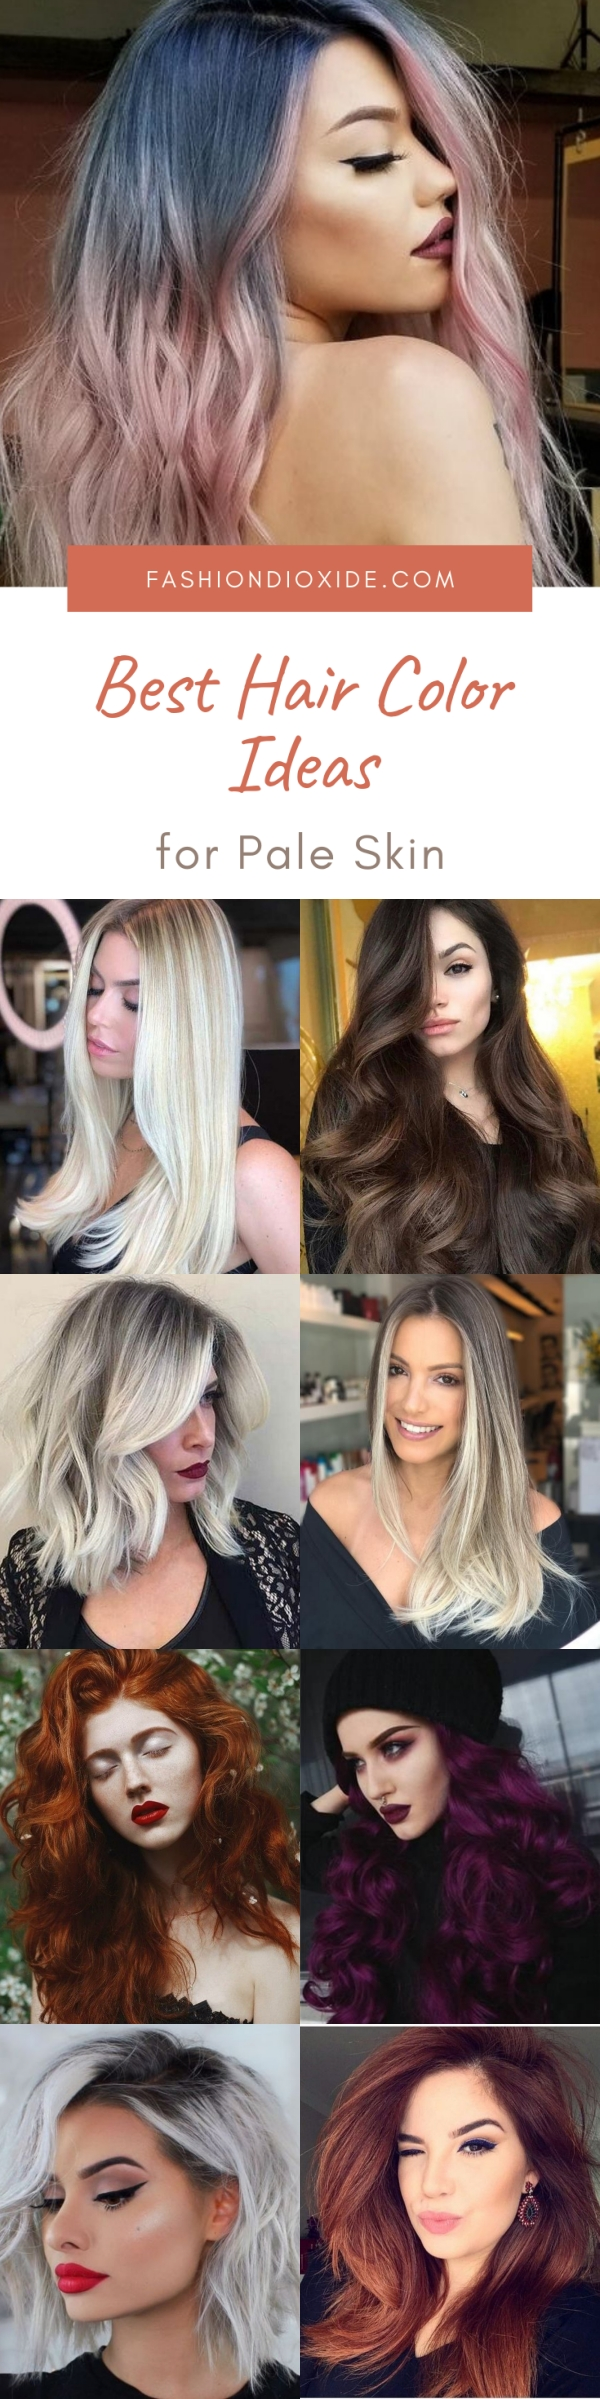 Best-Hair-Color-Ideas-for-Pale-Skin